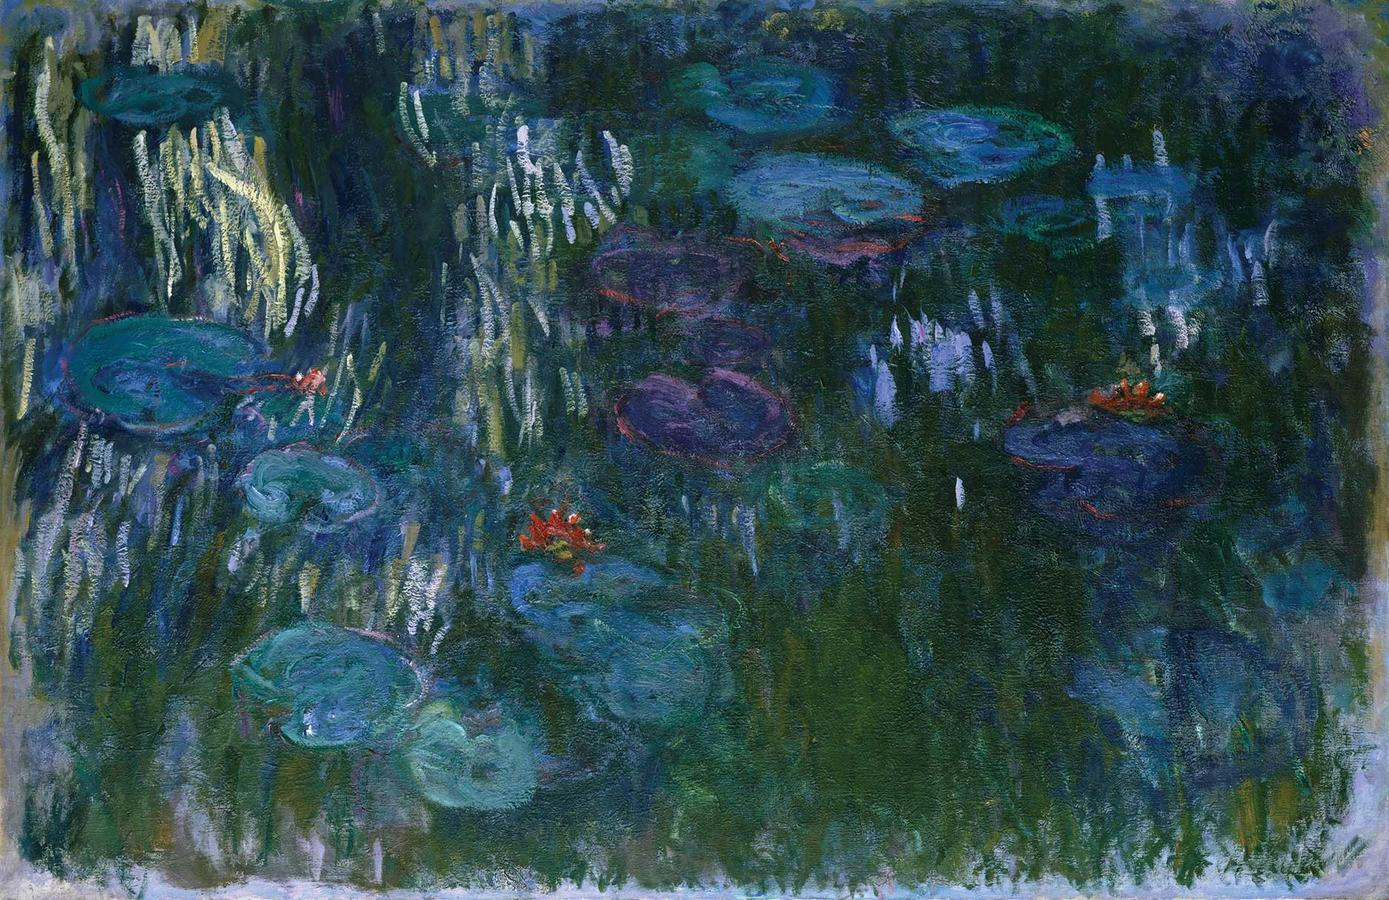 """Monet, """"Water Lilies"""" 1916–1919, oil on canvas, Lent by the Metropolitan Museum of Art, Gift of Louise Reinhardt Smith, 1983 (1983.532)"""